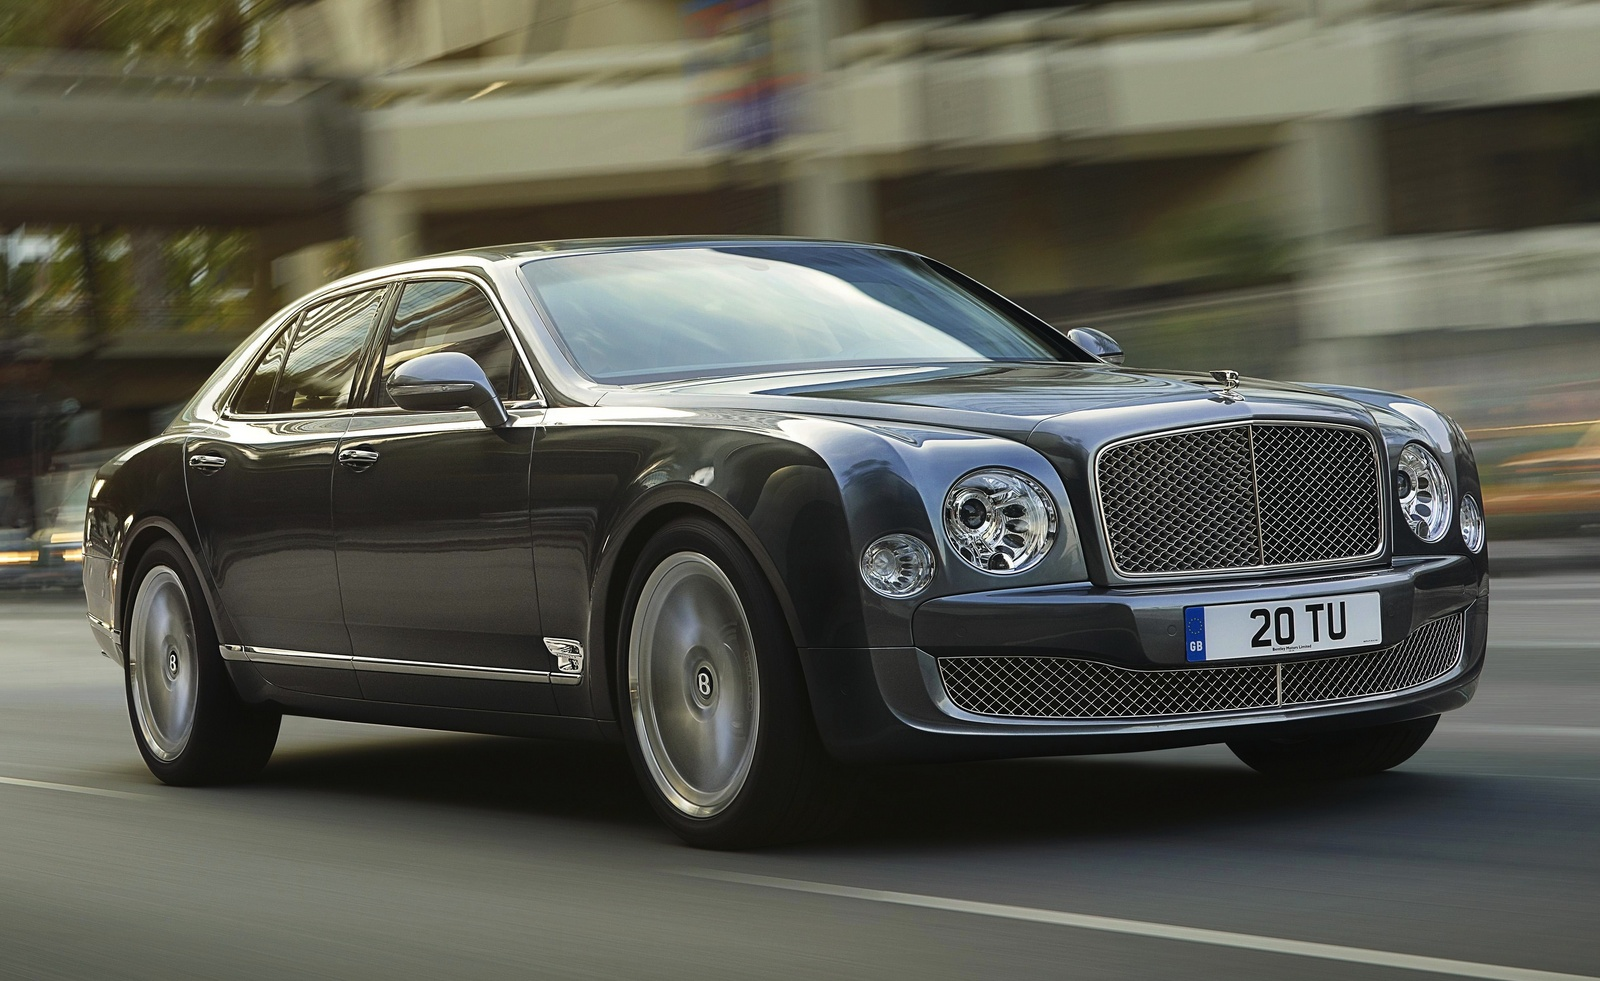 Performance: 2015 Bentley Mulsanne